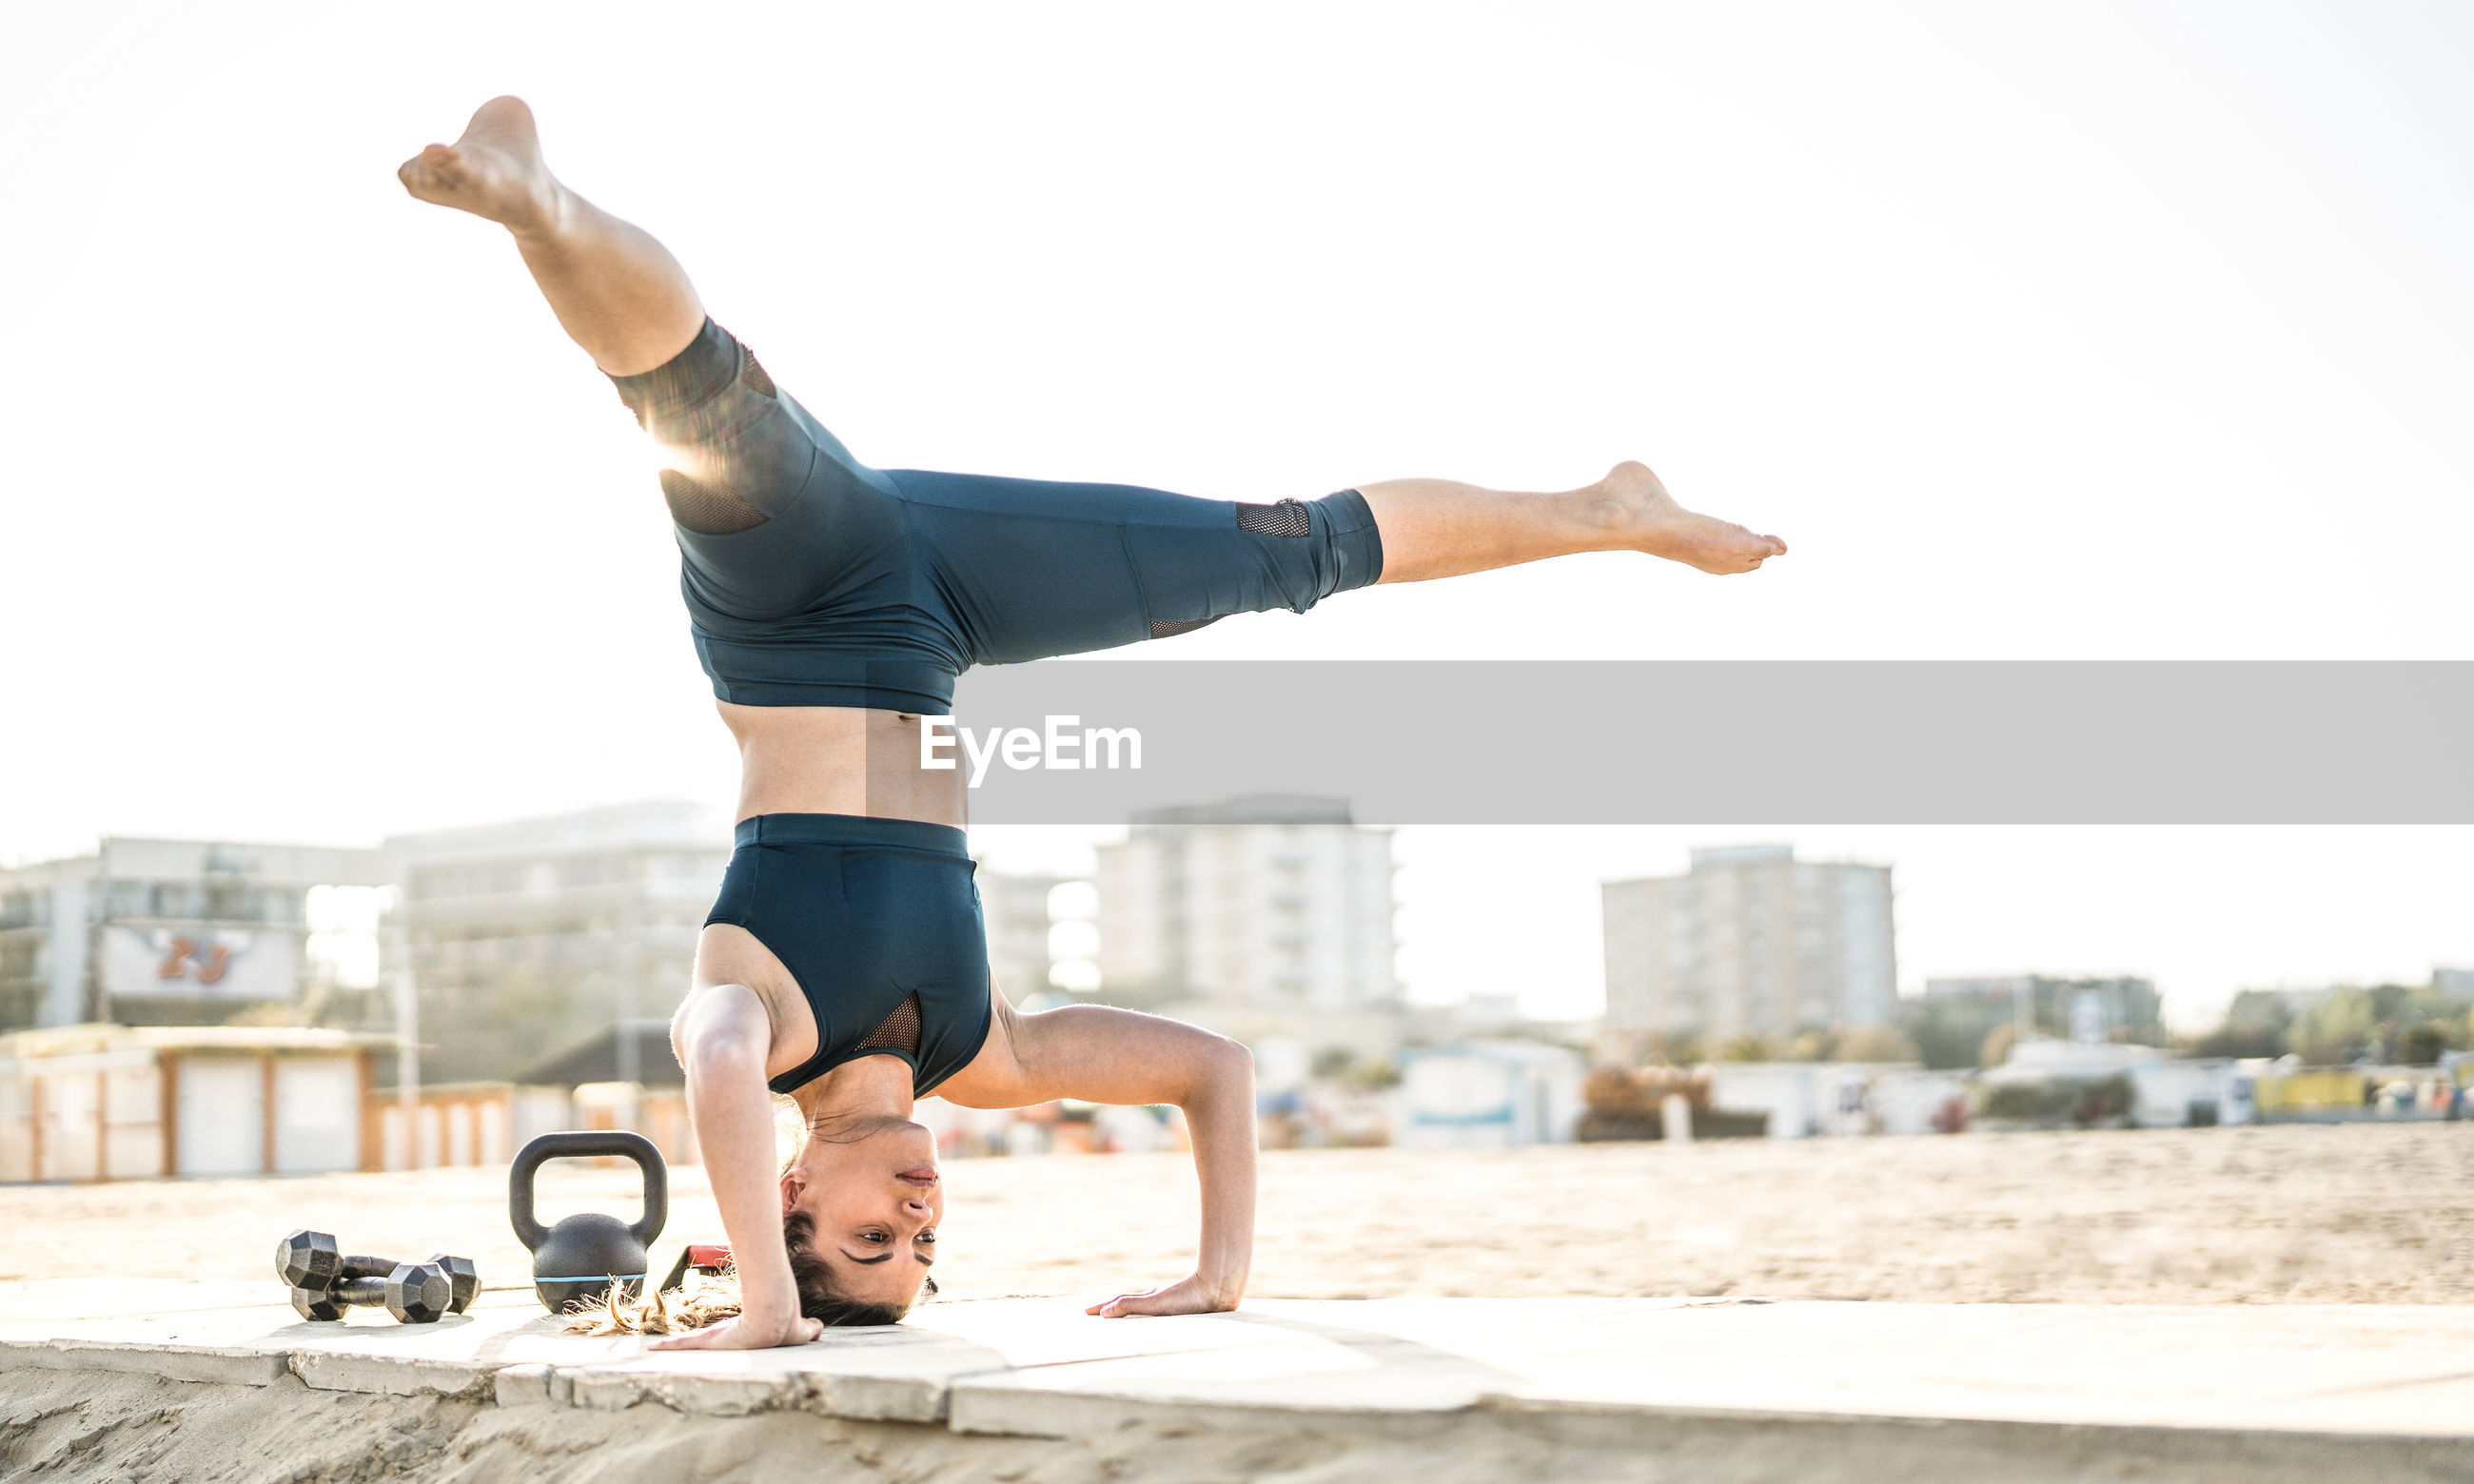 Full length of woman practicing headstand on retaining wall against sky